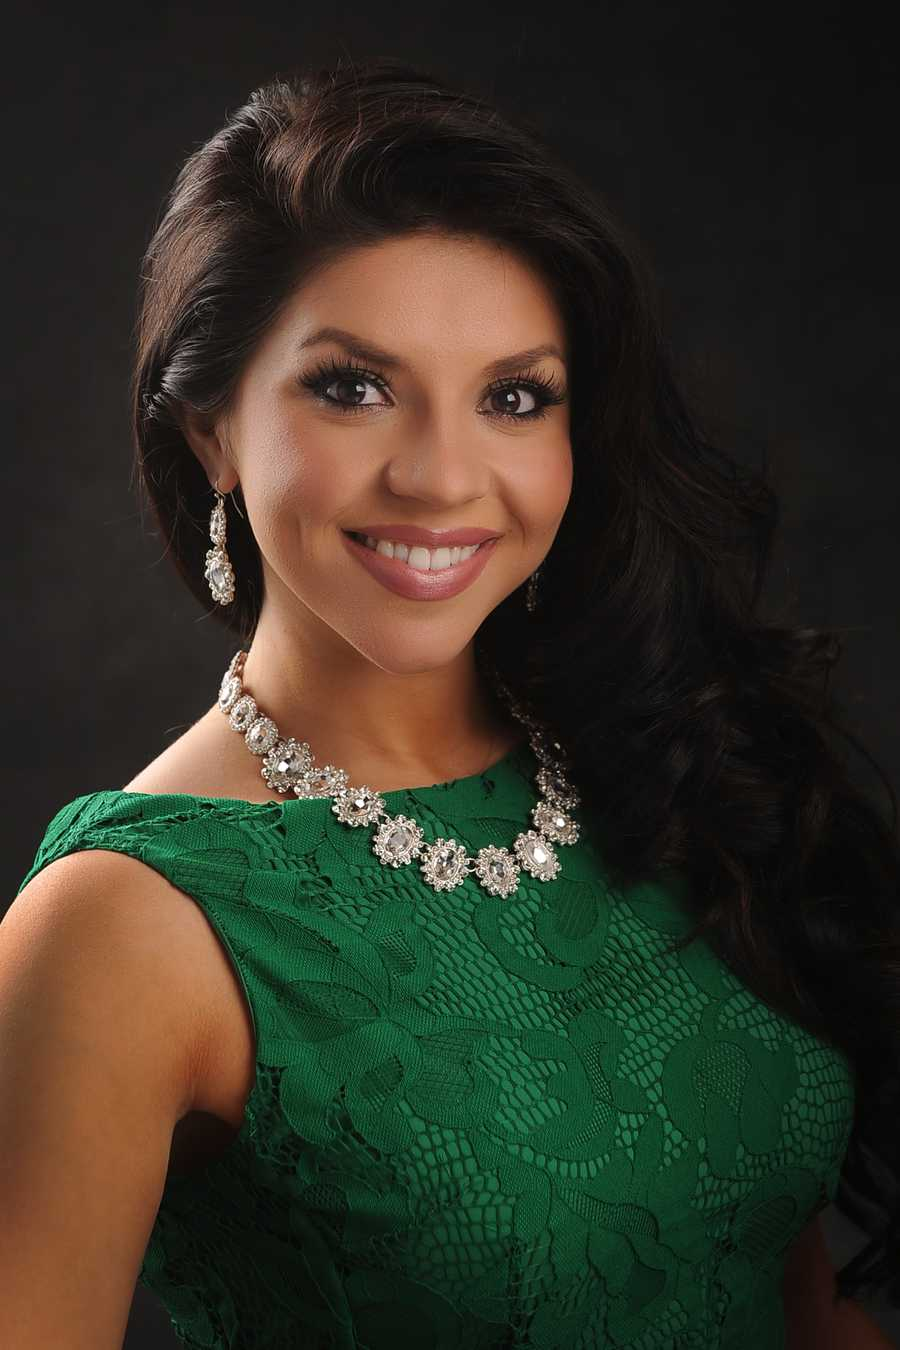 Gabrielle Torres, Miss Bernalillo County